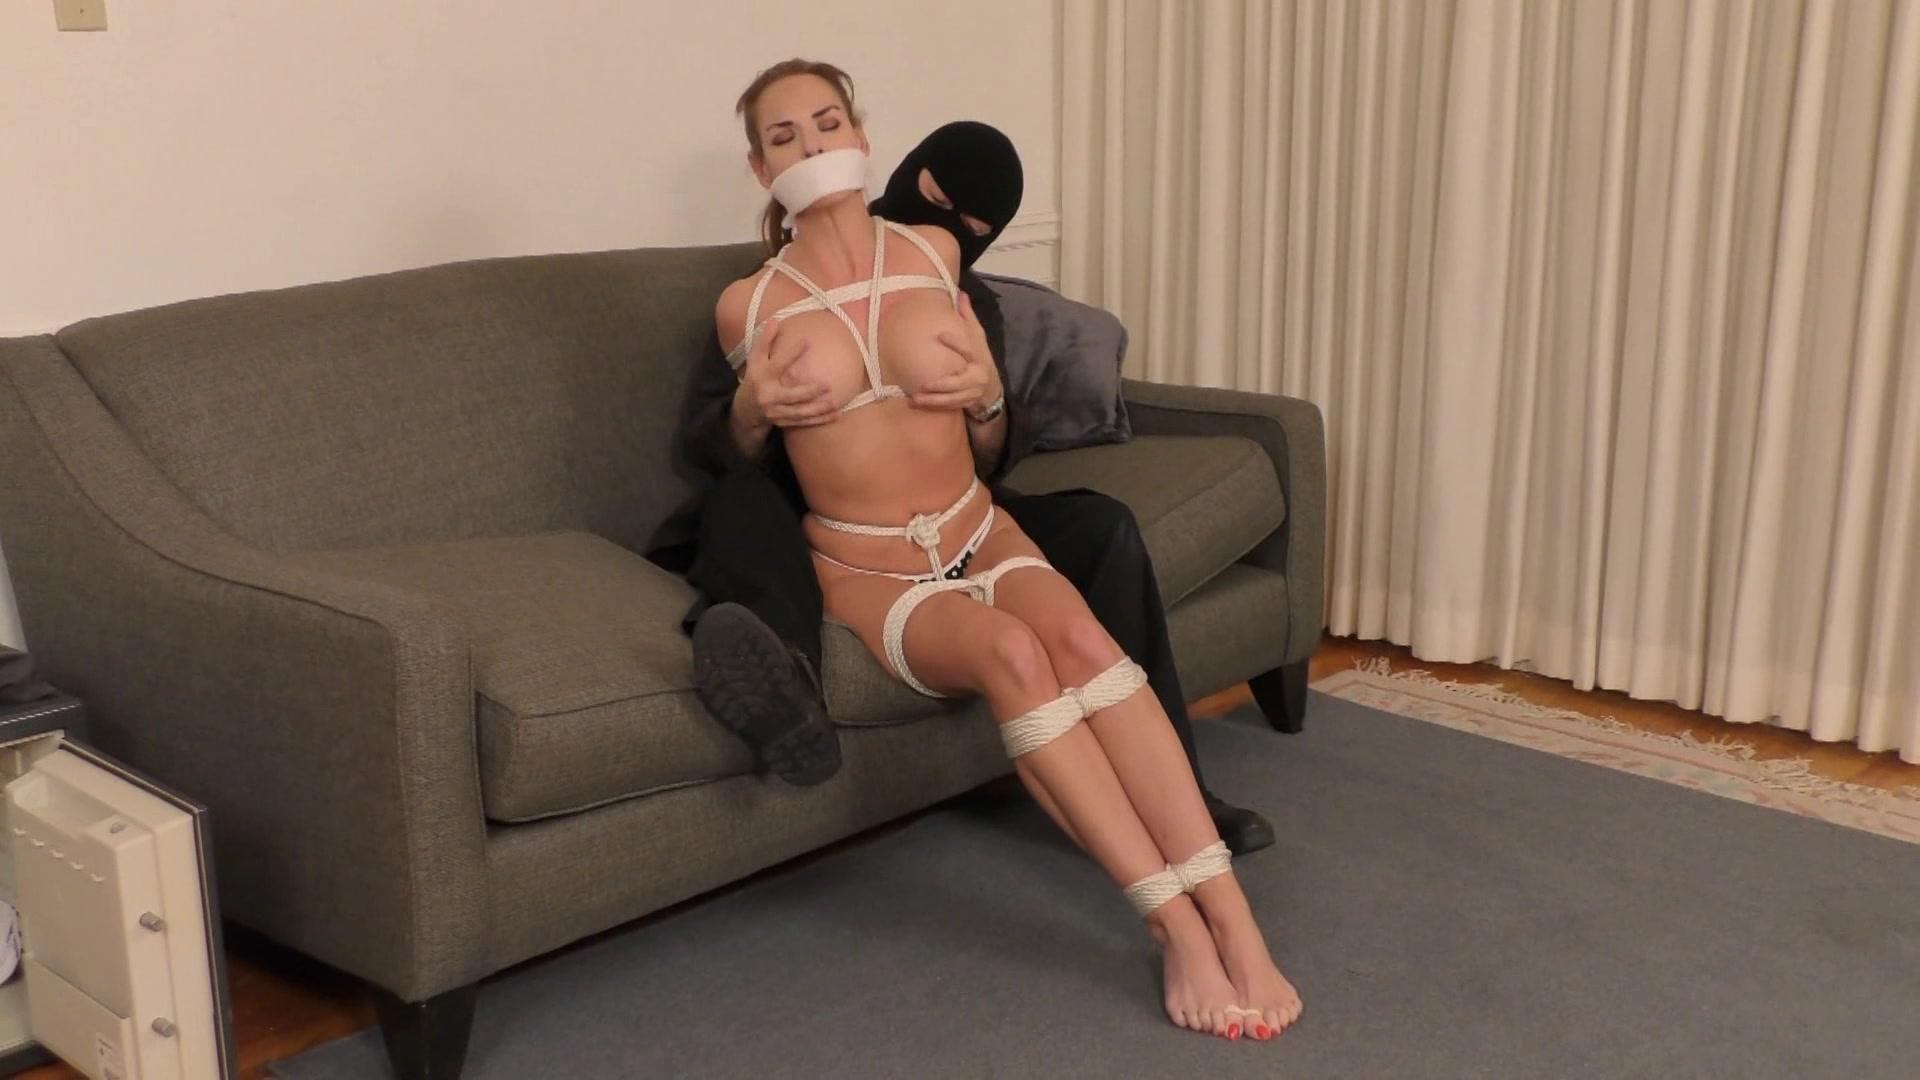 A tied up vyxen steel gets her throat pussy amp ass fucked 2